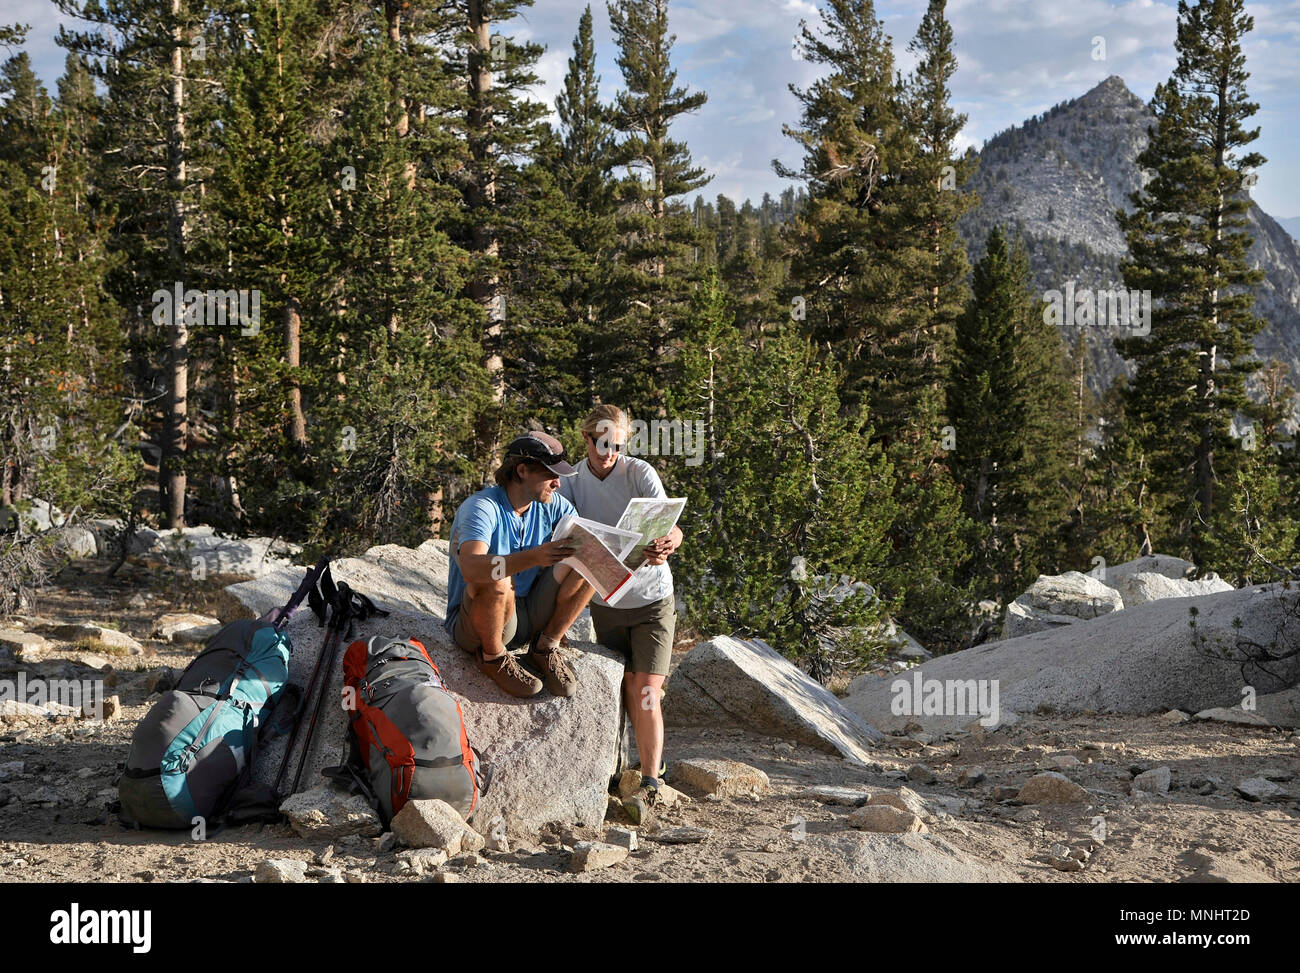 Backpackers refer to their map on the Copper Creek Trail on a two-week trek of the Sierra High Route in Kings Canyon National Park in California. The 200-mile route roughly parallels the popular John Muir Trail through the Sierra Nevada Range of California from Kings Canyon National Park to Yosemite National Park. - Stock Image